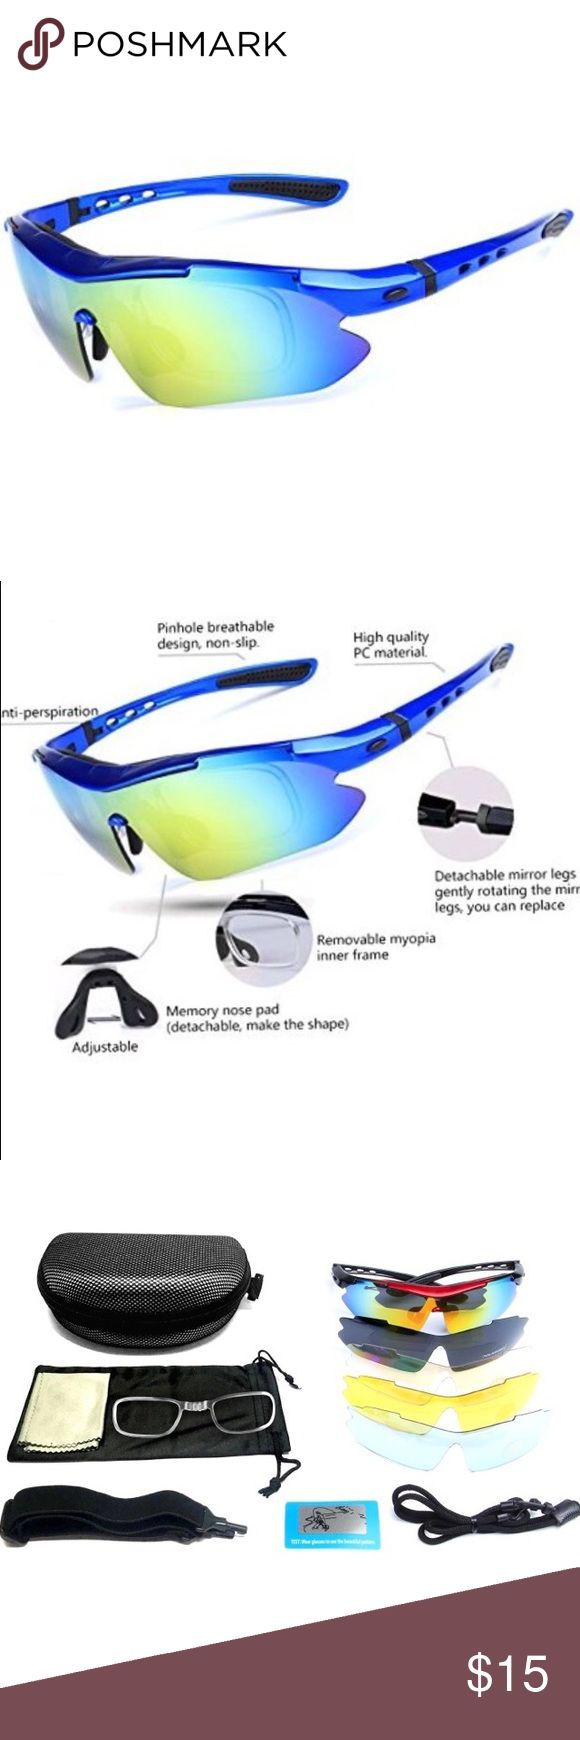 Polarized Sports Sunglasses With 5 Pcs Lenses Polarized Sports Sunglasses With 5 Pcs different Lenses color . Detail in pictures . High quality Accessories Sunglasses